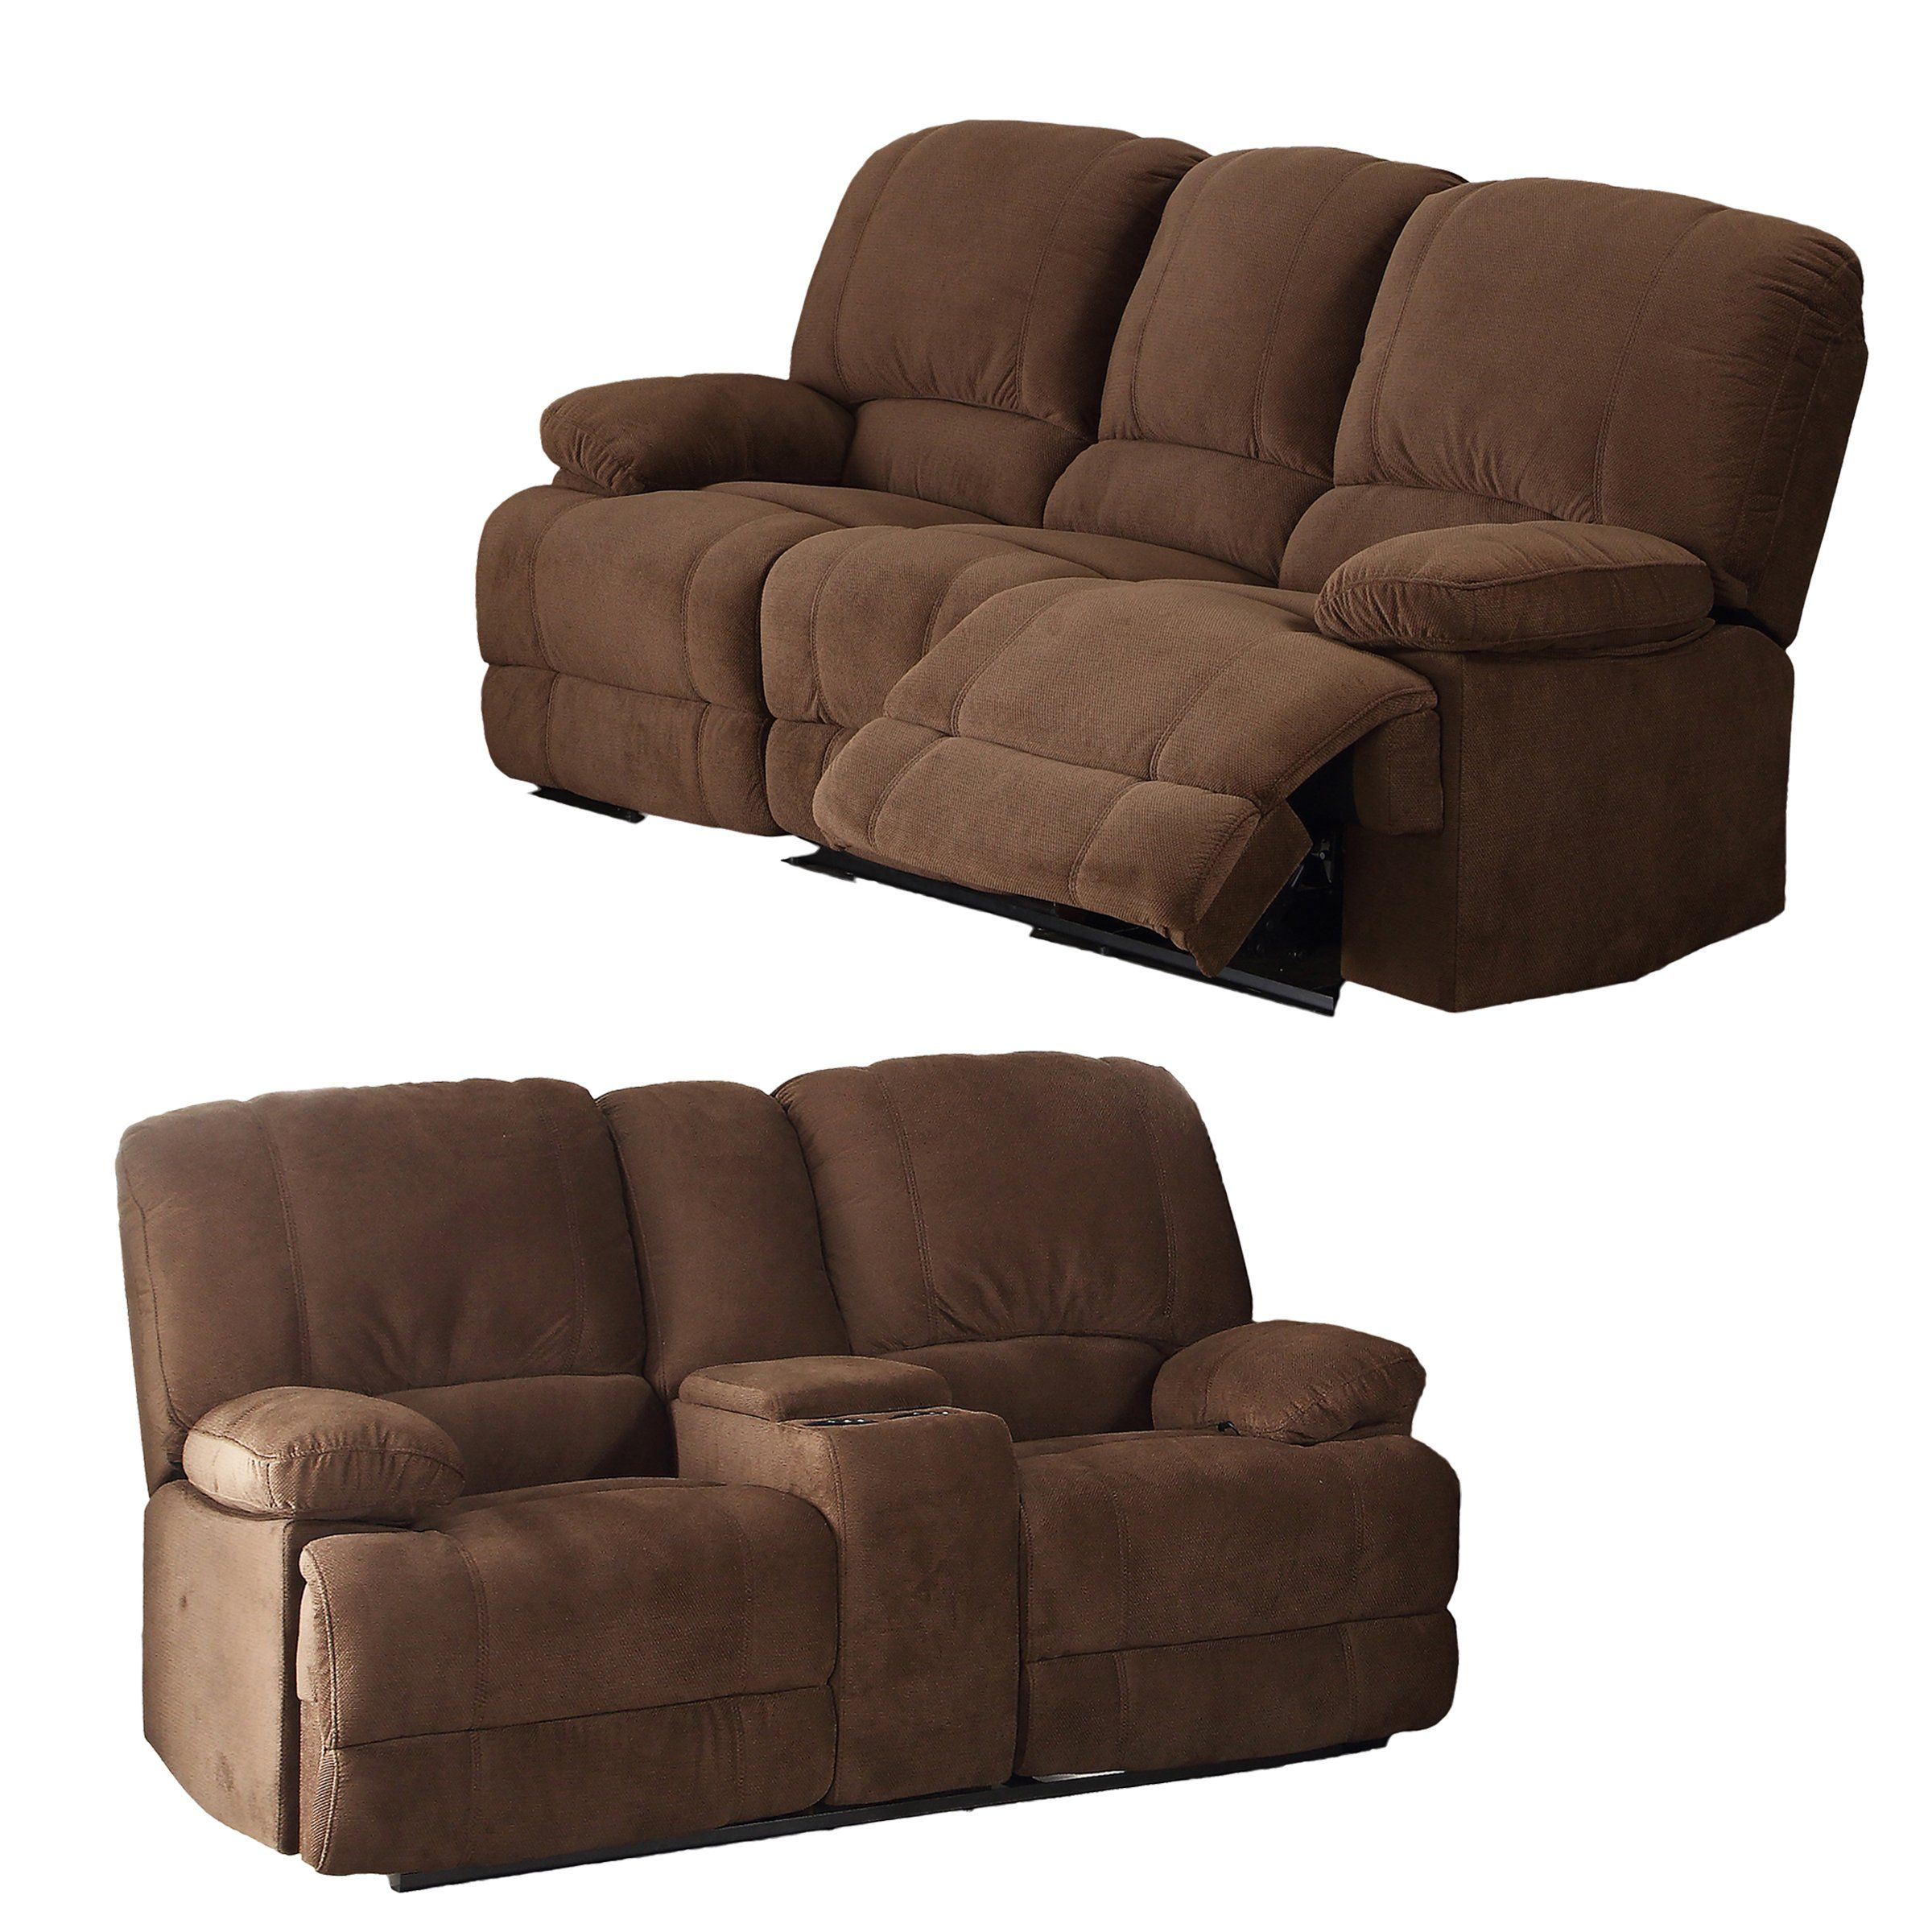 Piece Upholstered Transitional Living Room Set with Dual Reclining